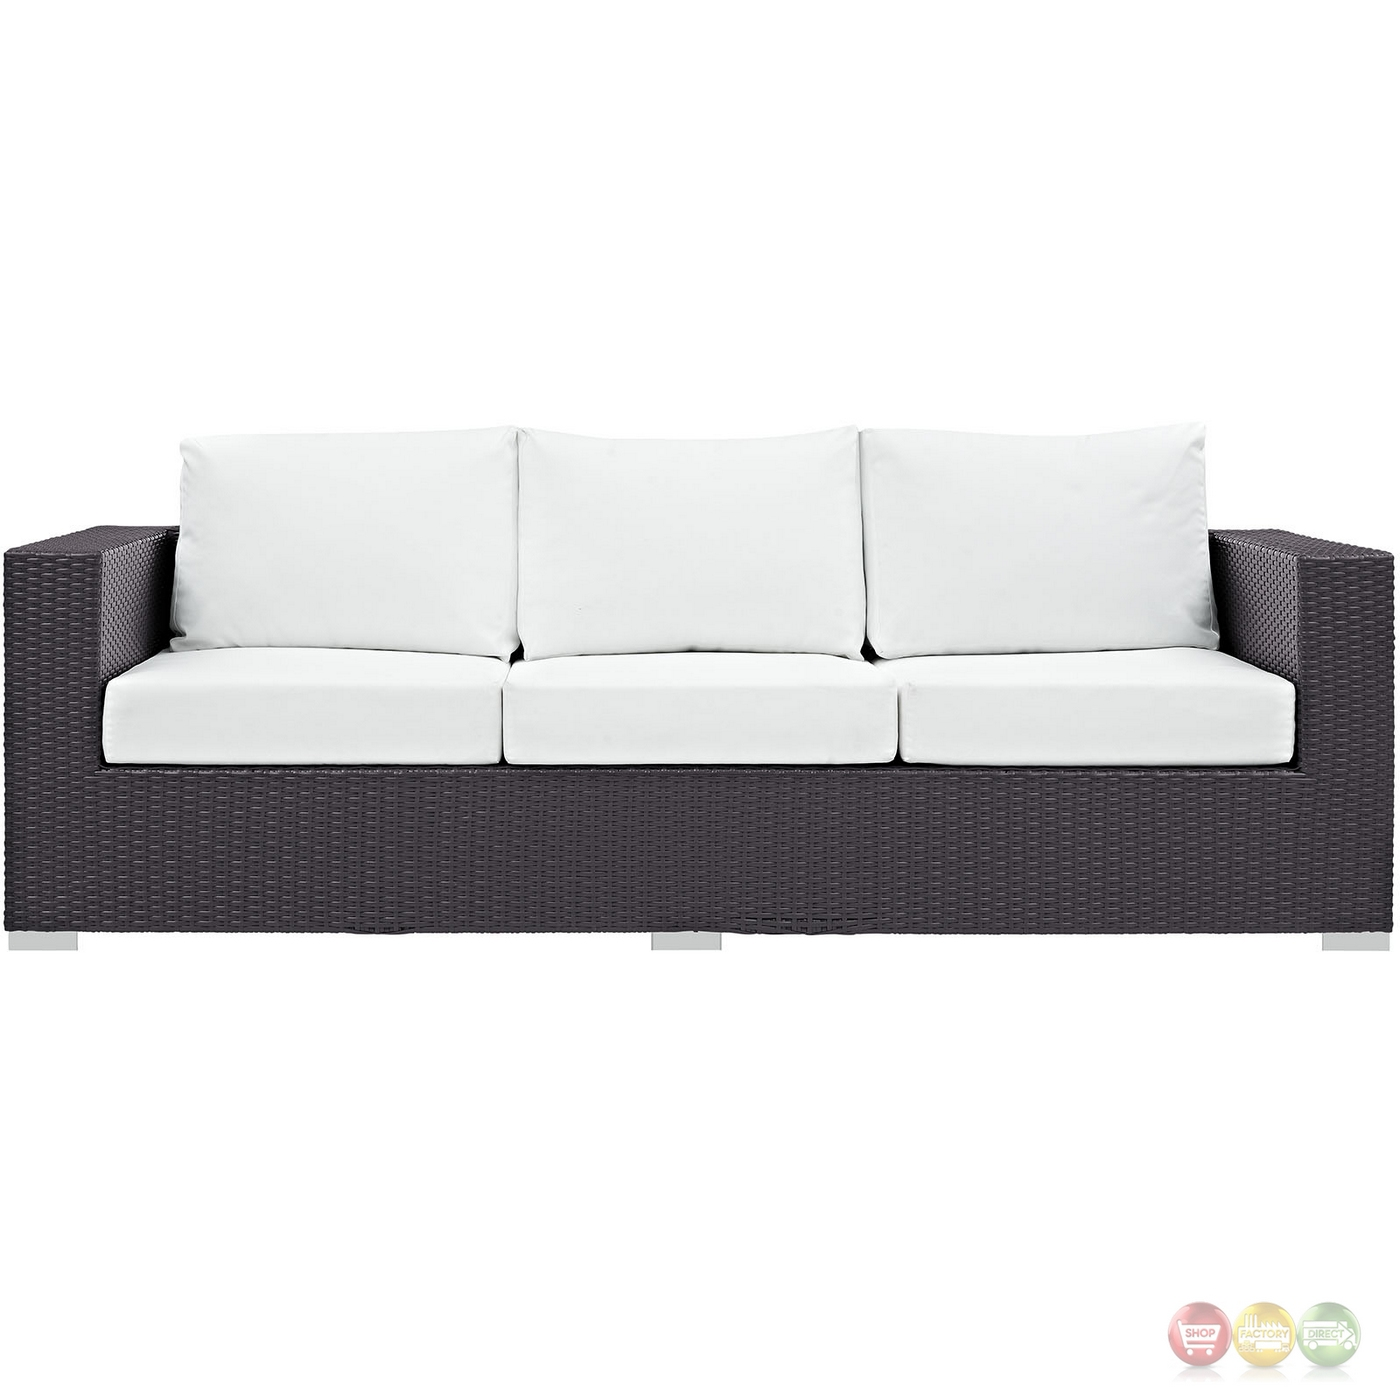 Convene Modular Rattan Outdoor Patio Sofa W/cushions